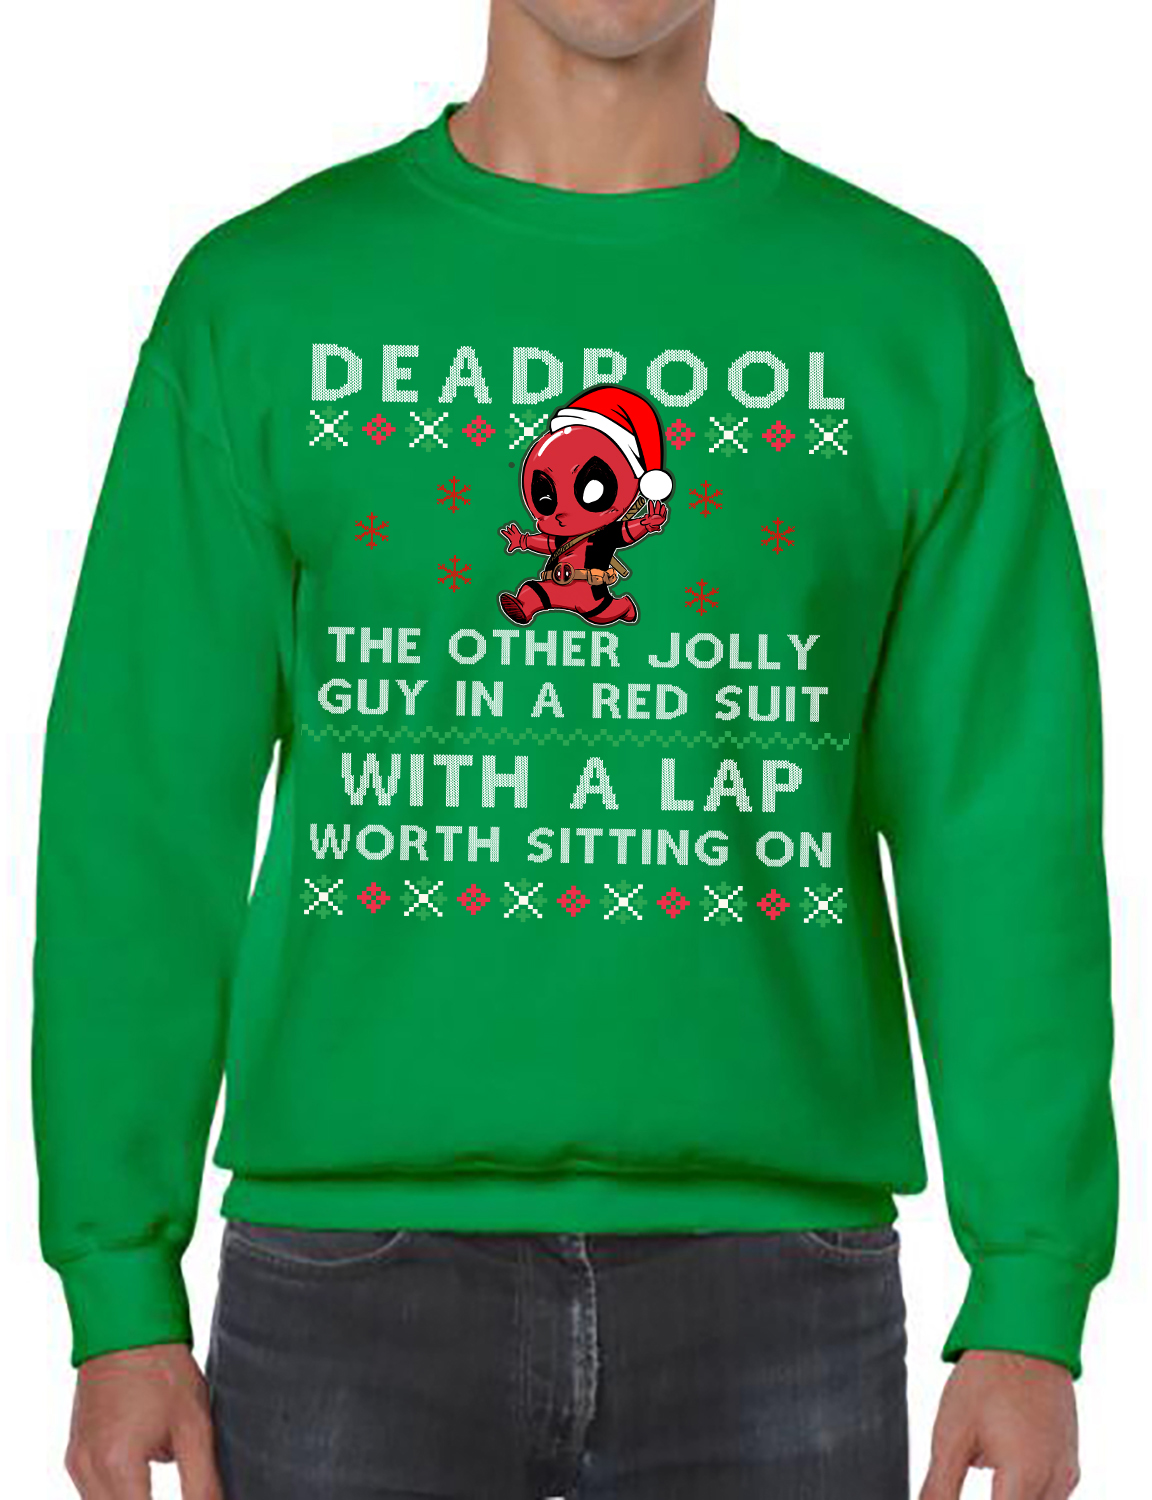 Deadpool, The Other Jolly Guy In A Red Suit With A Lap Worth Sitting ...